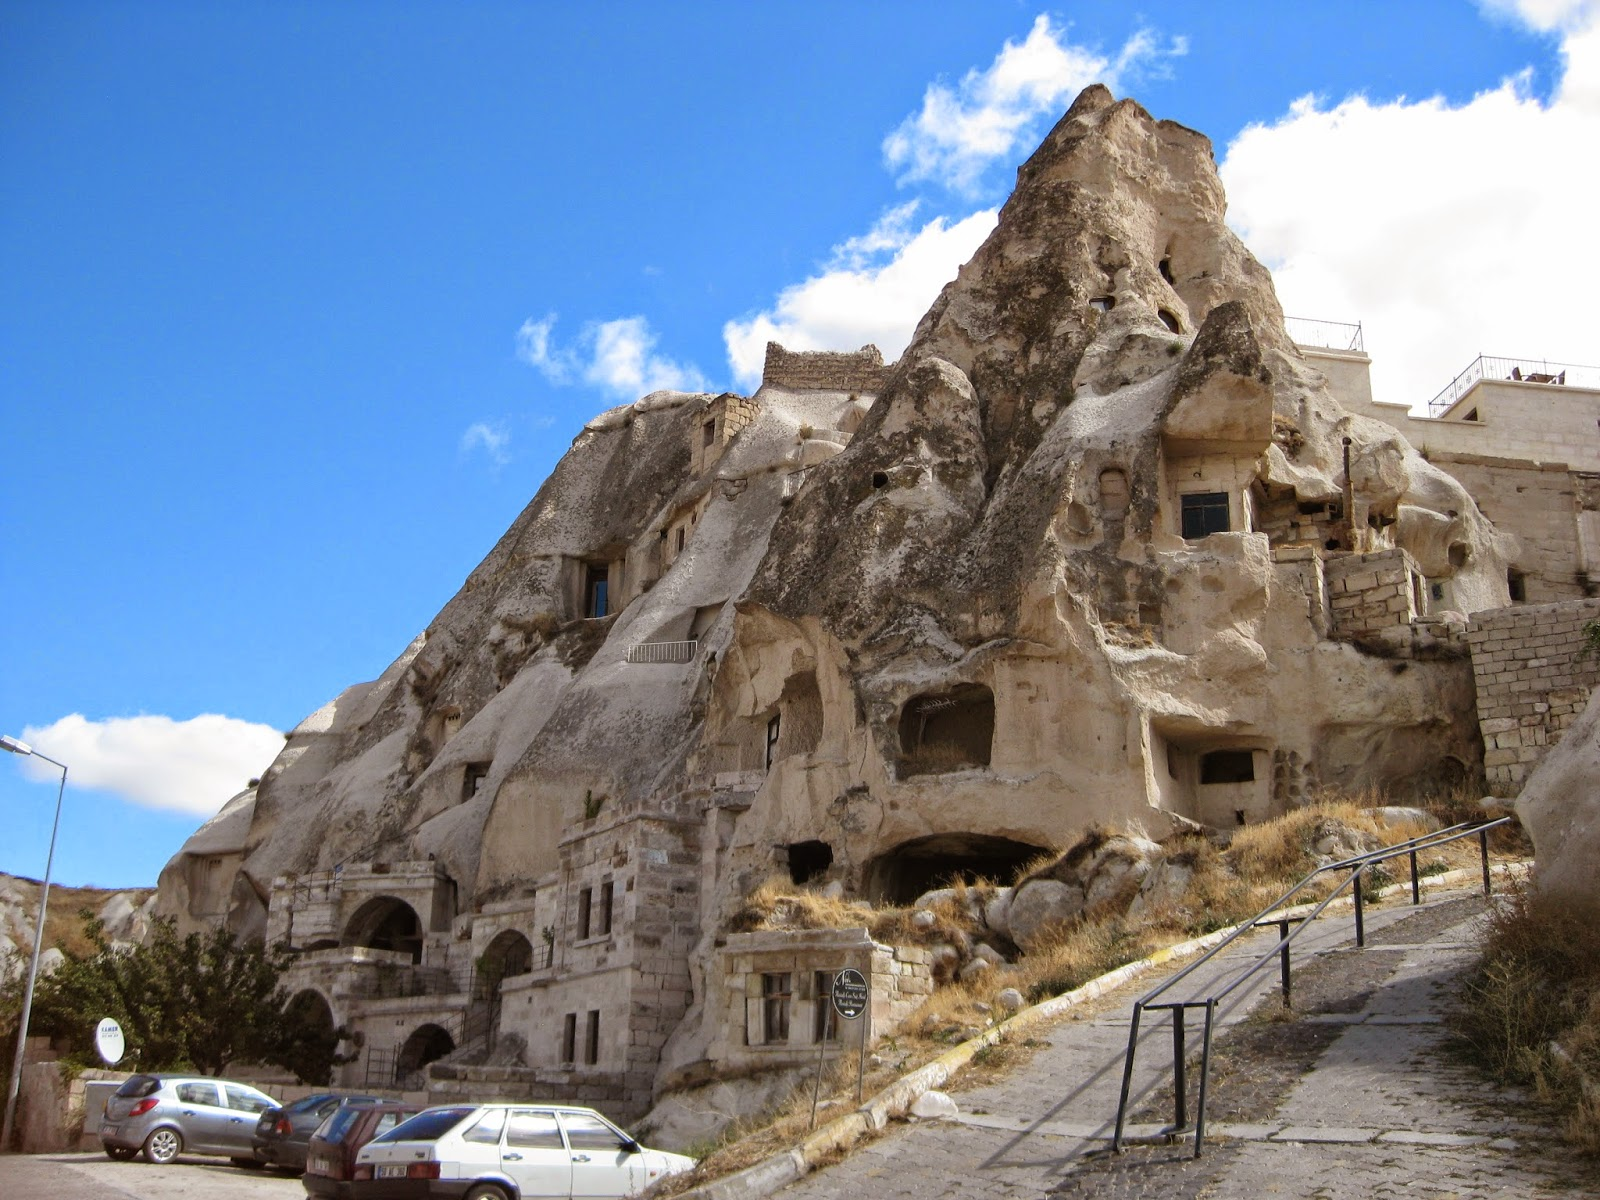 Cappadocia - Residential caves near our hotel